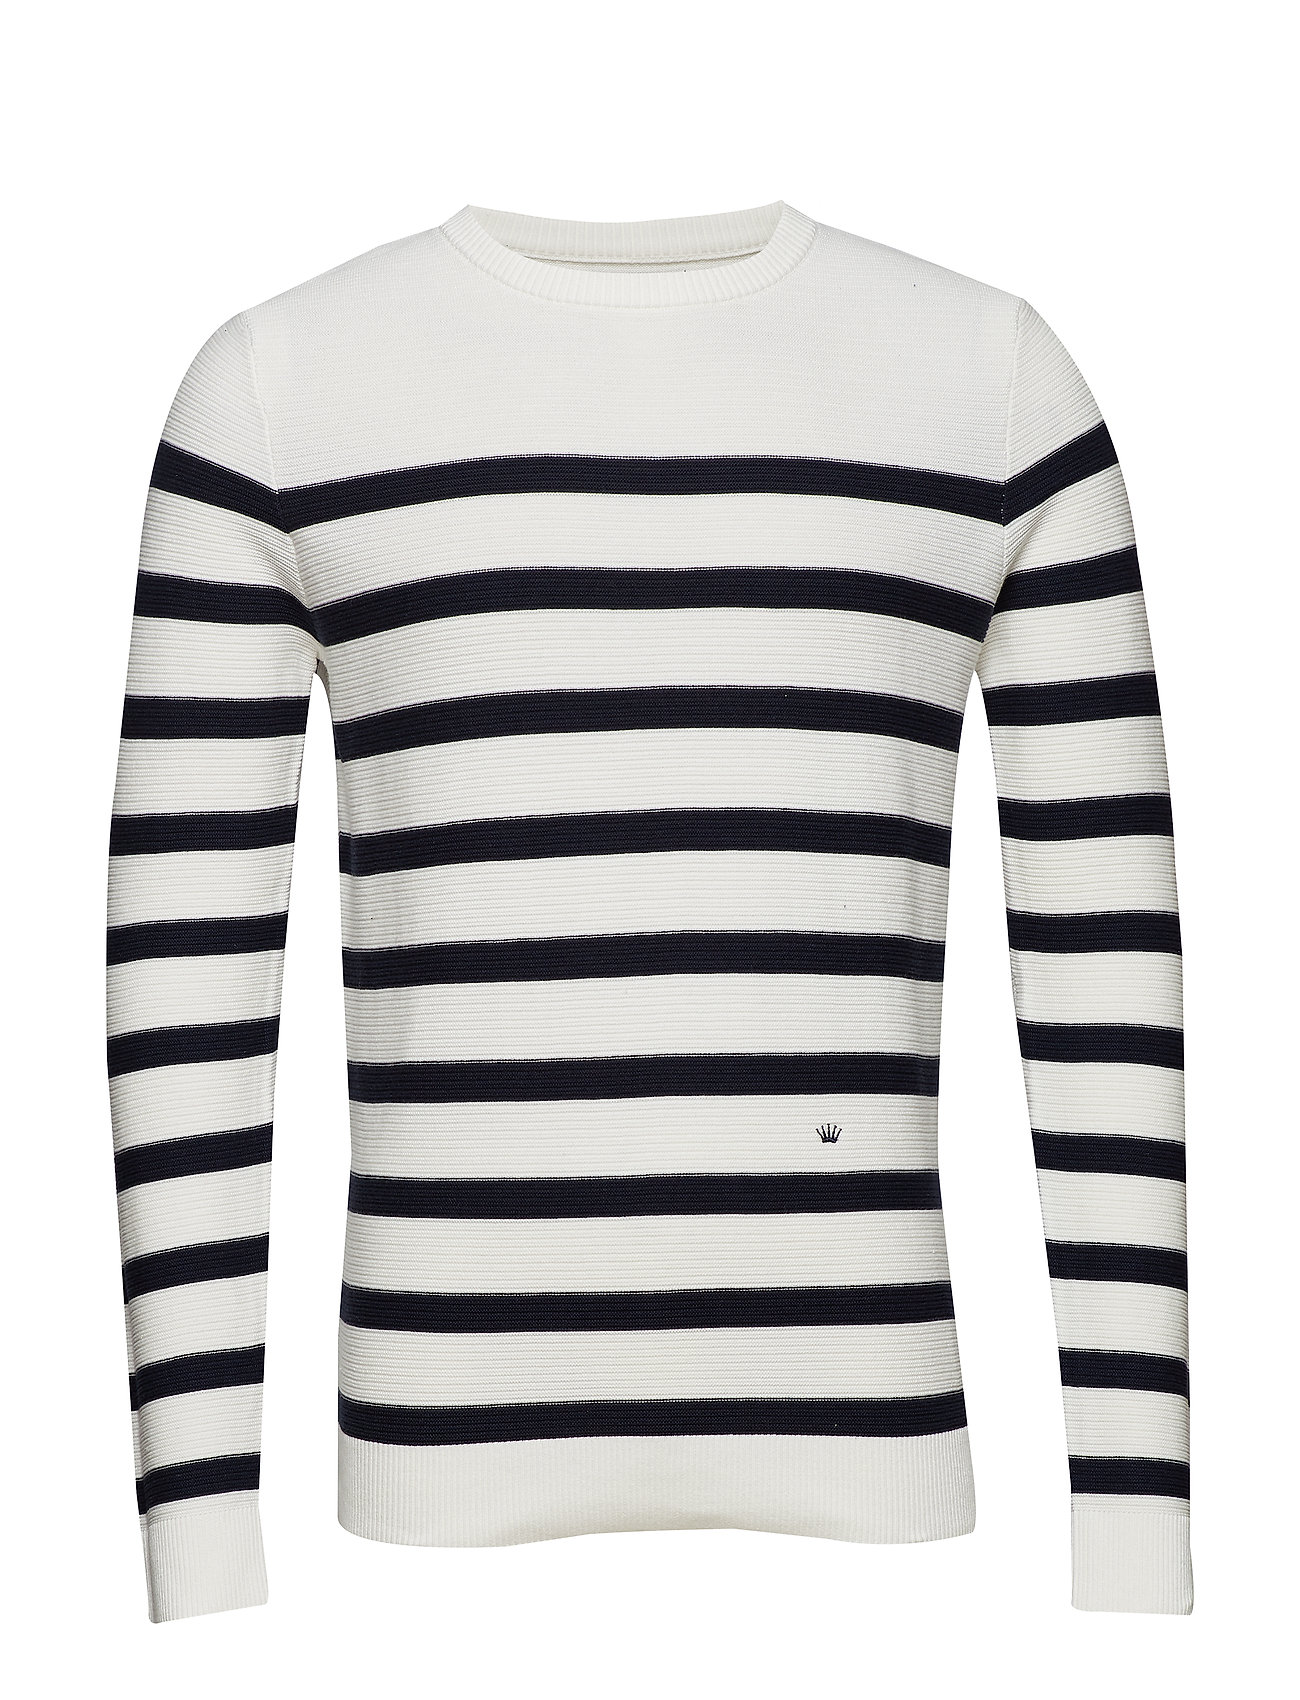 De Luxe Striped Jumperoff WhiteJunk Knit tdshCQr